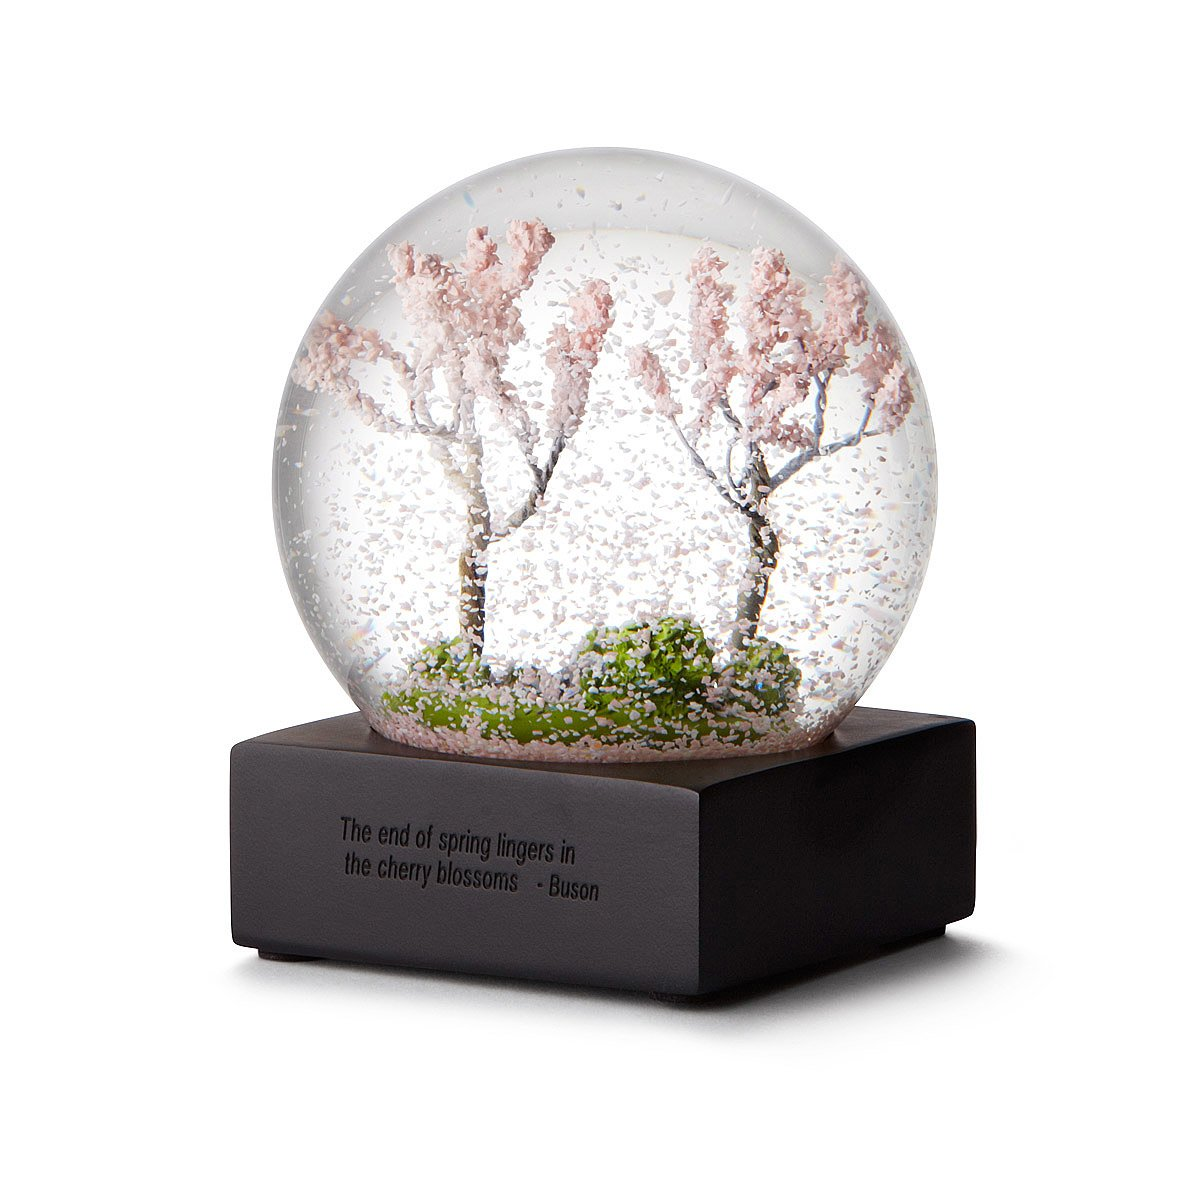 Cherry blossom snow globe miniature flower petal art uncommongoods cherry blossom snow globe 1 thumbnail gumiabroncs Images